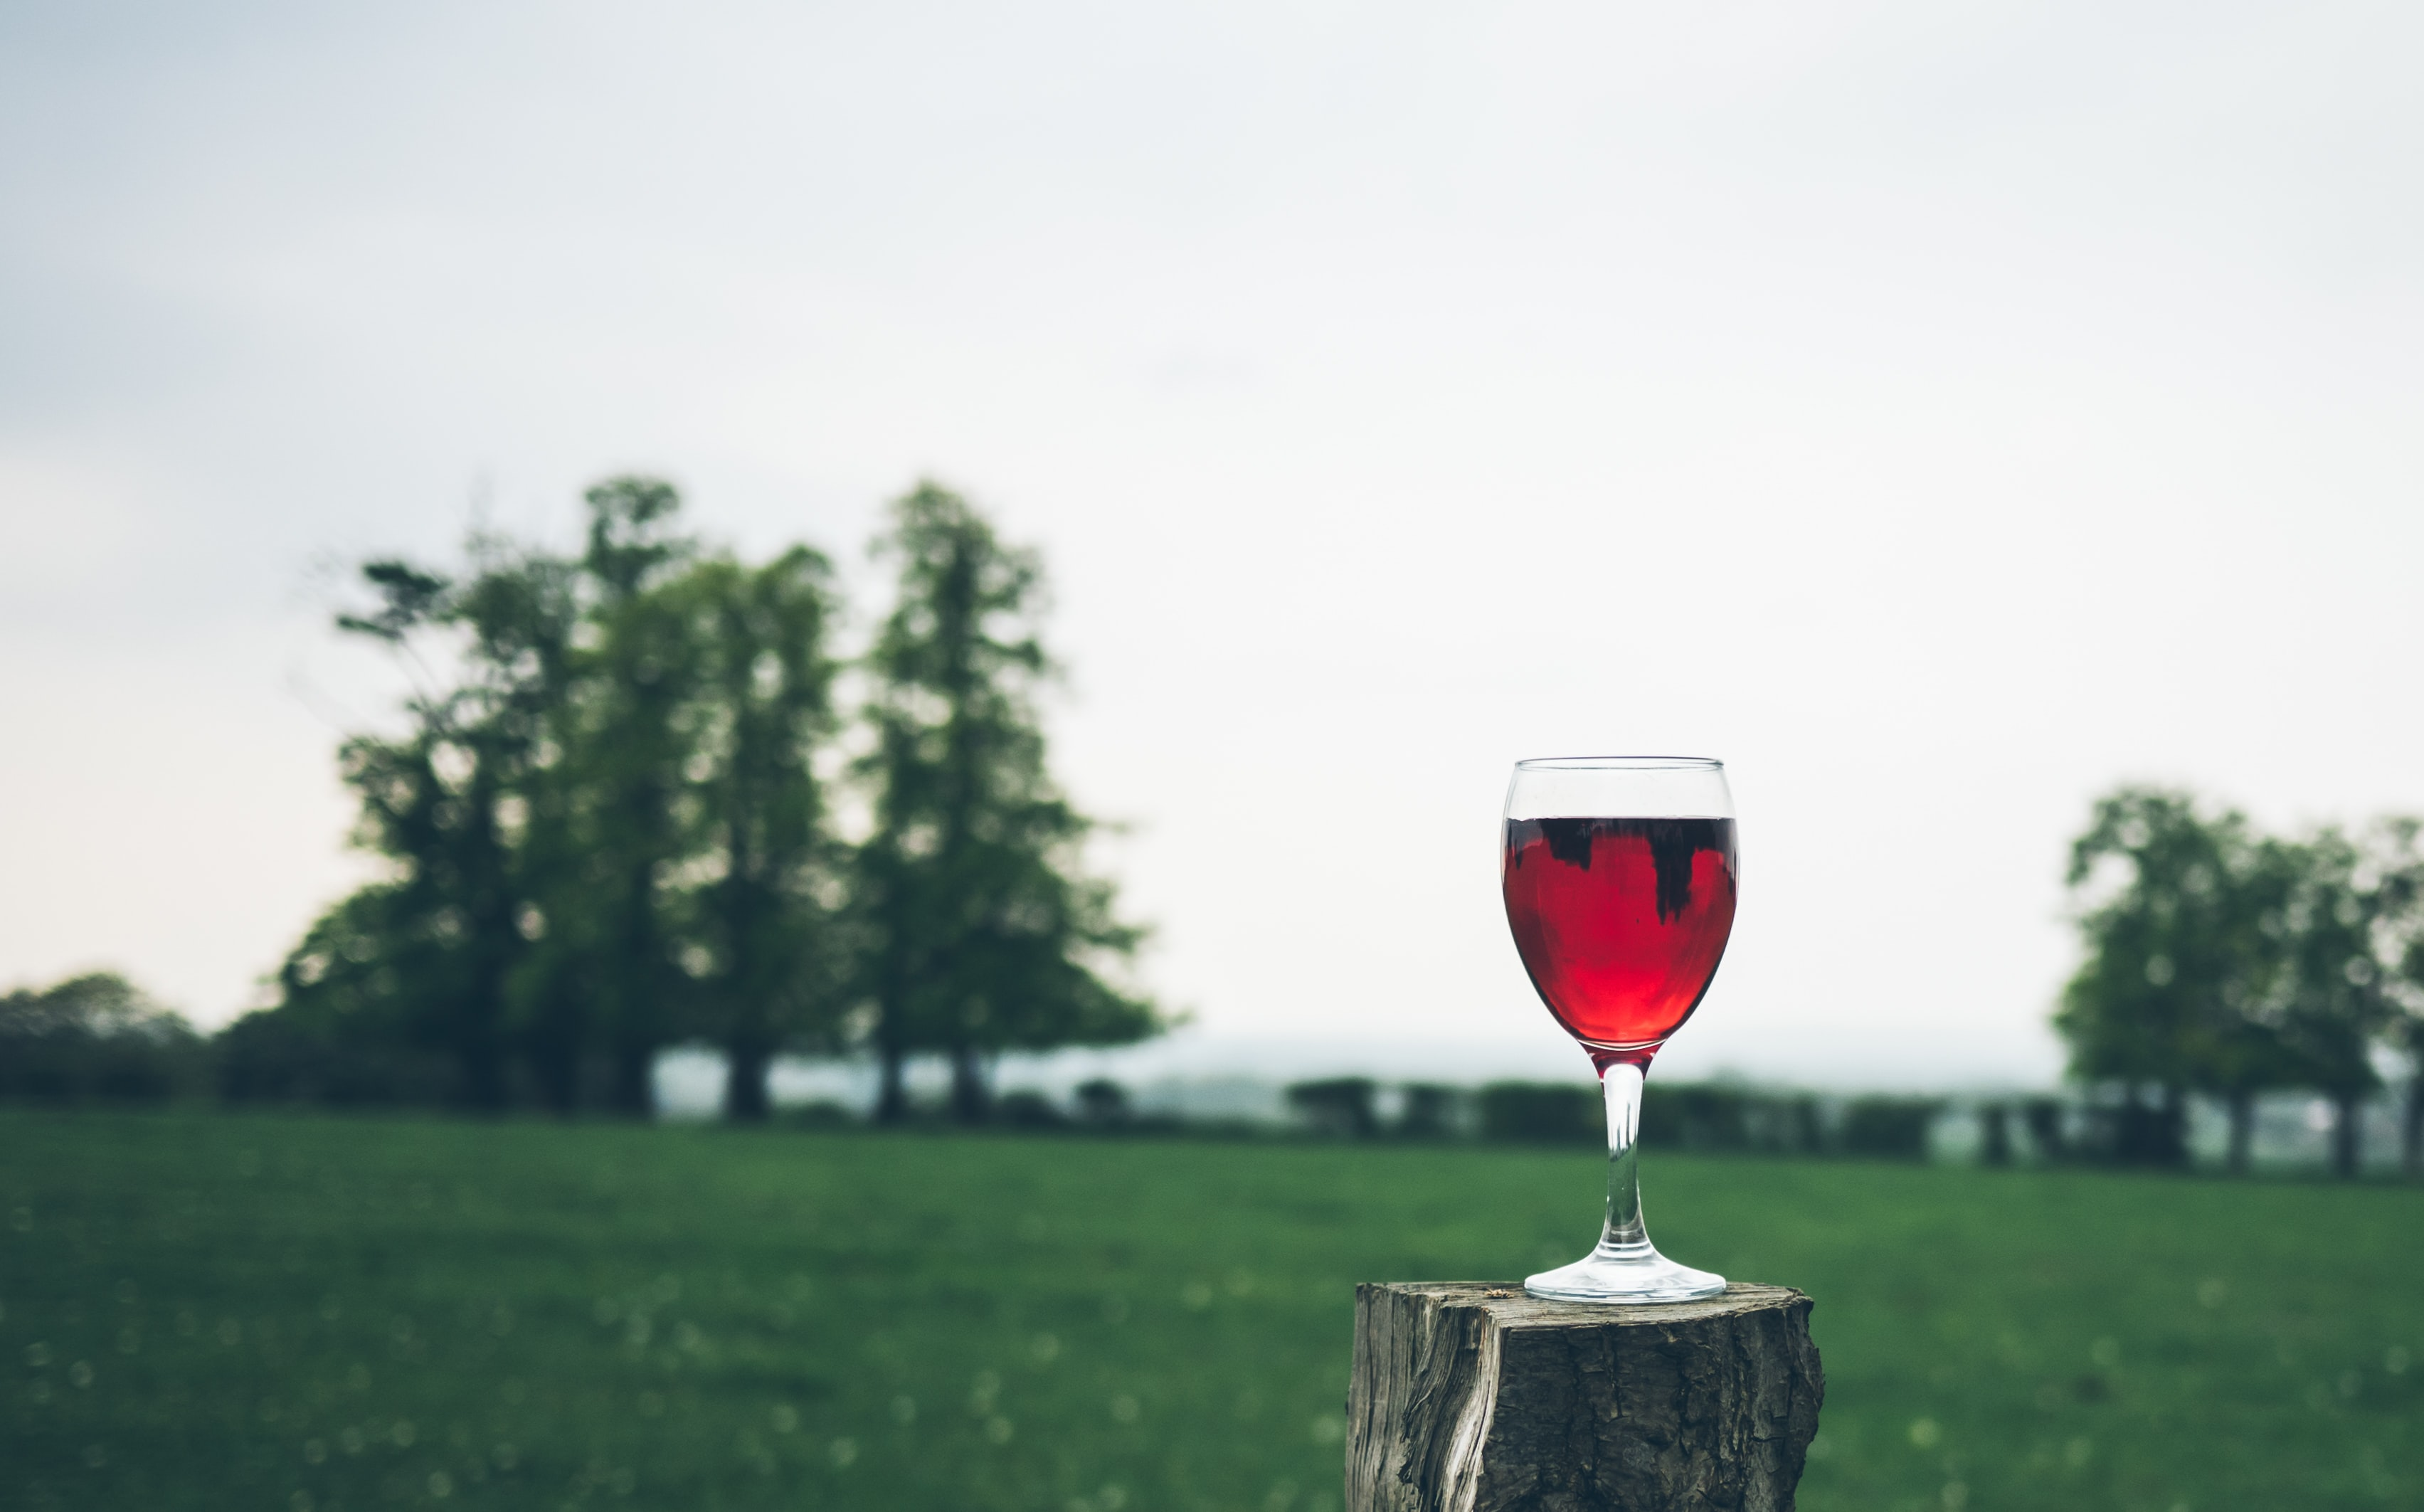 selective focus photography of wine glass on tree trunk